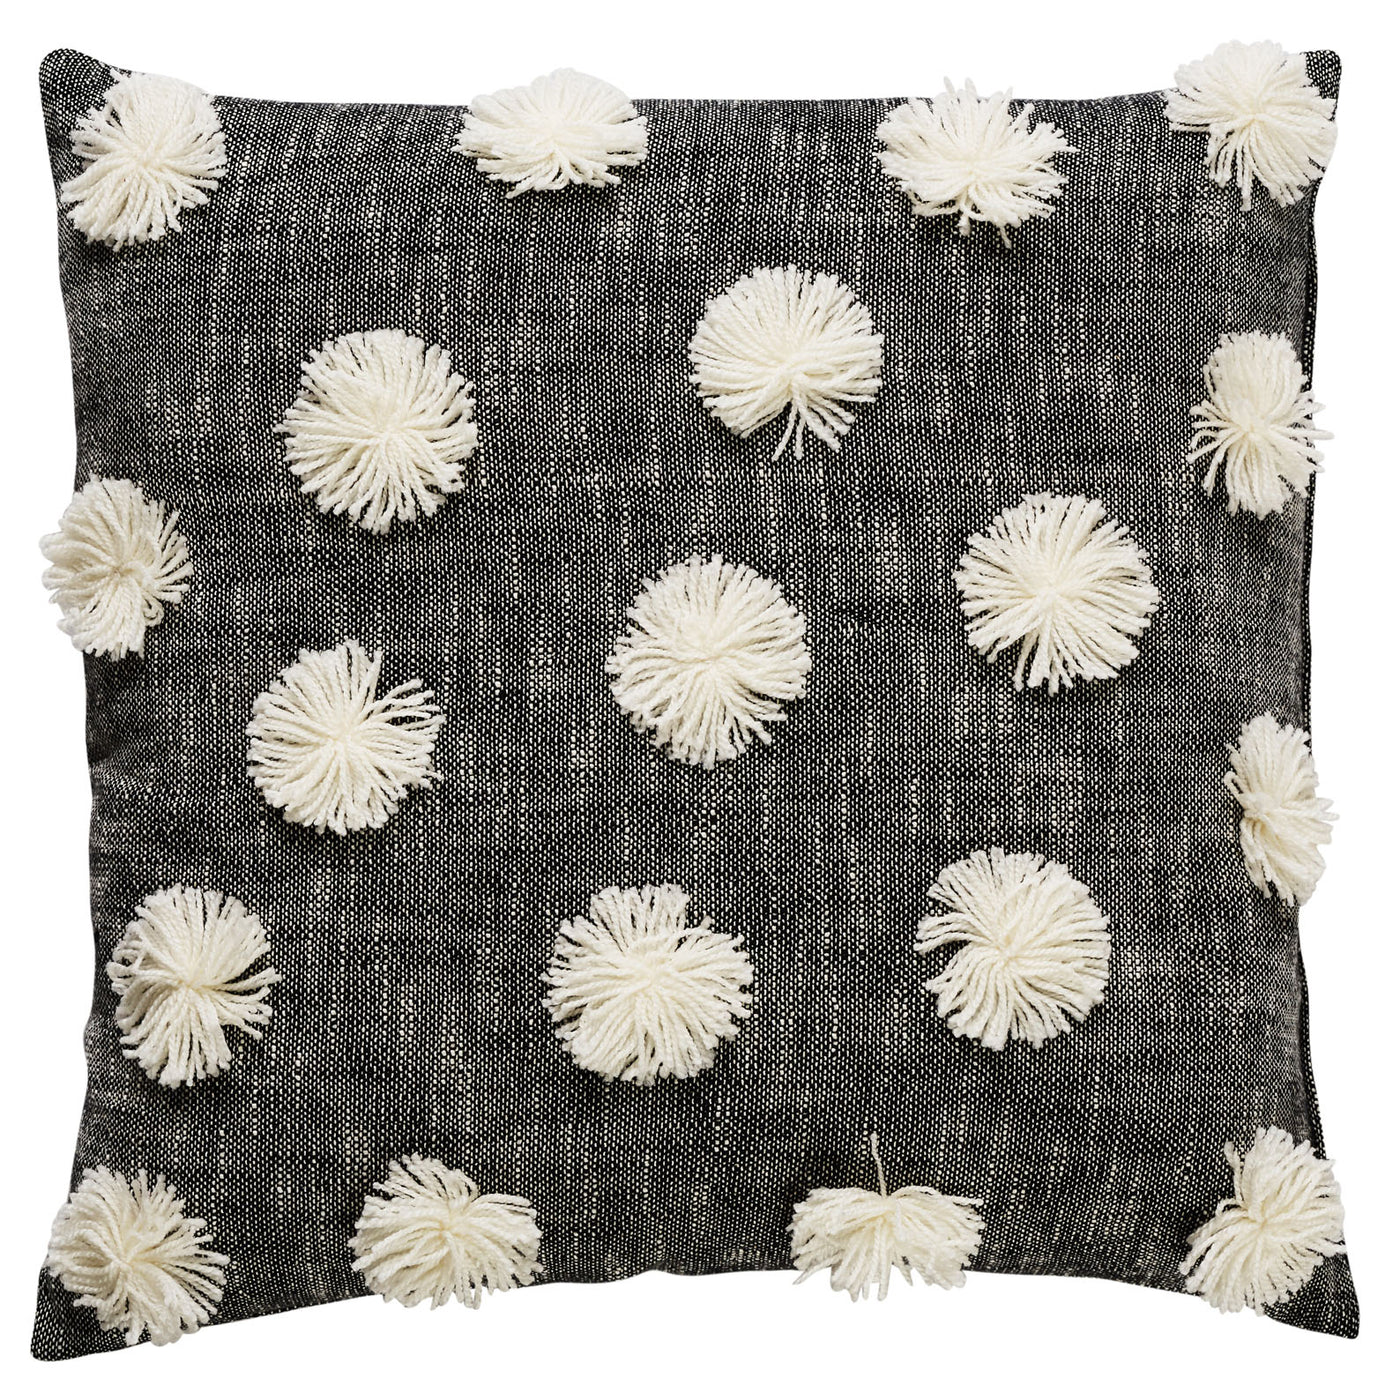 Bartley Ainseed Cushion